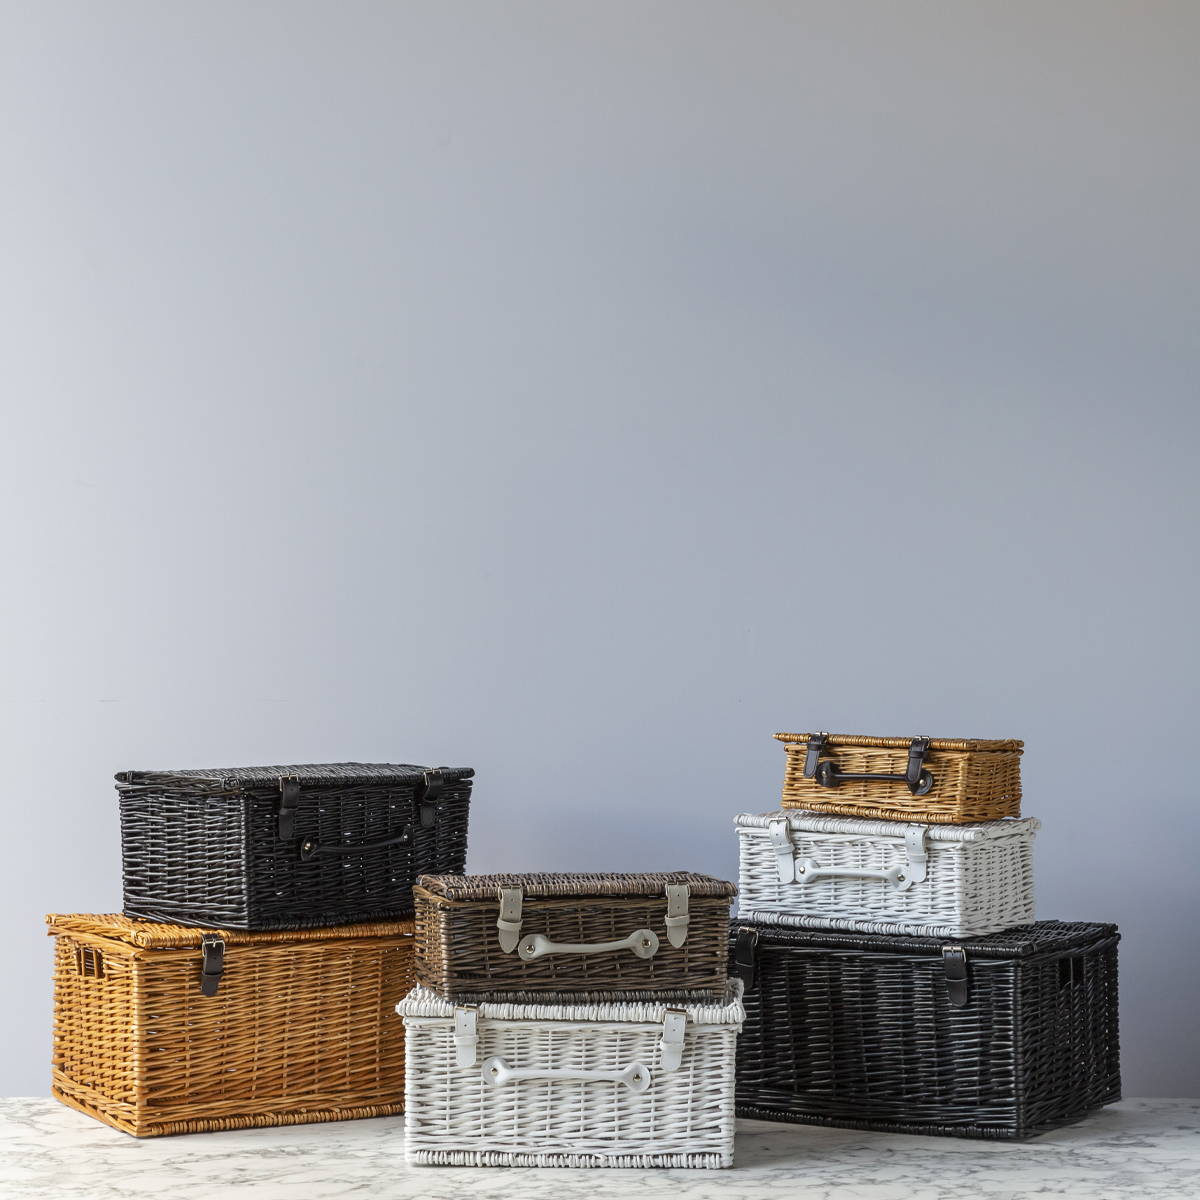 Wholesale Empty Wicker Hampers